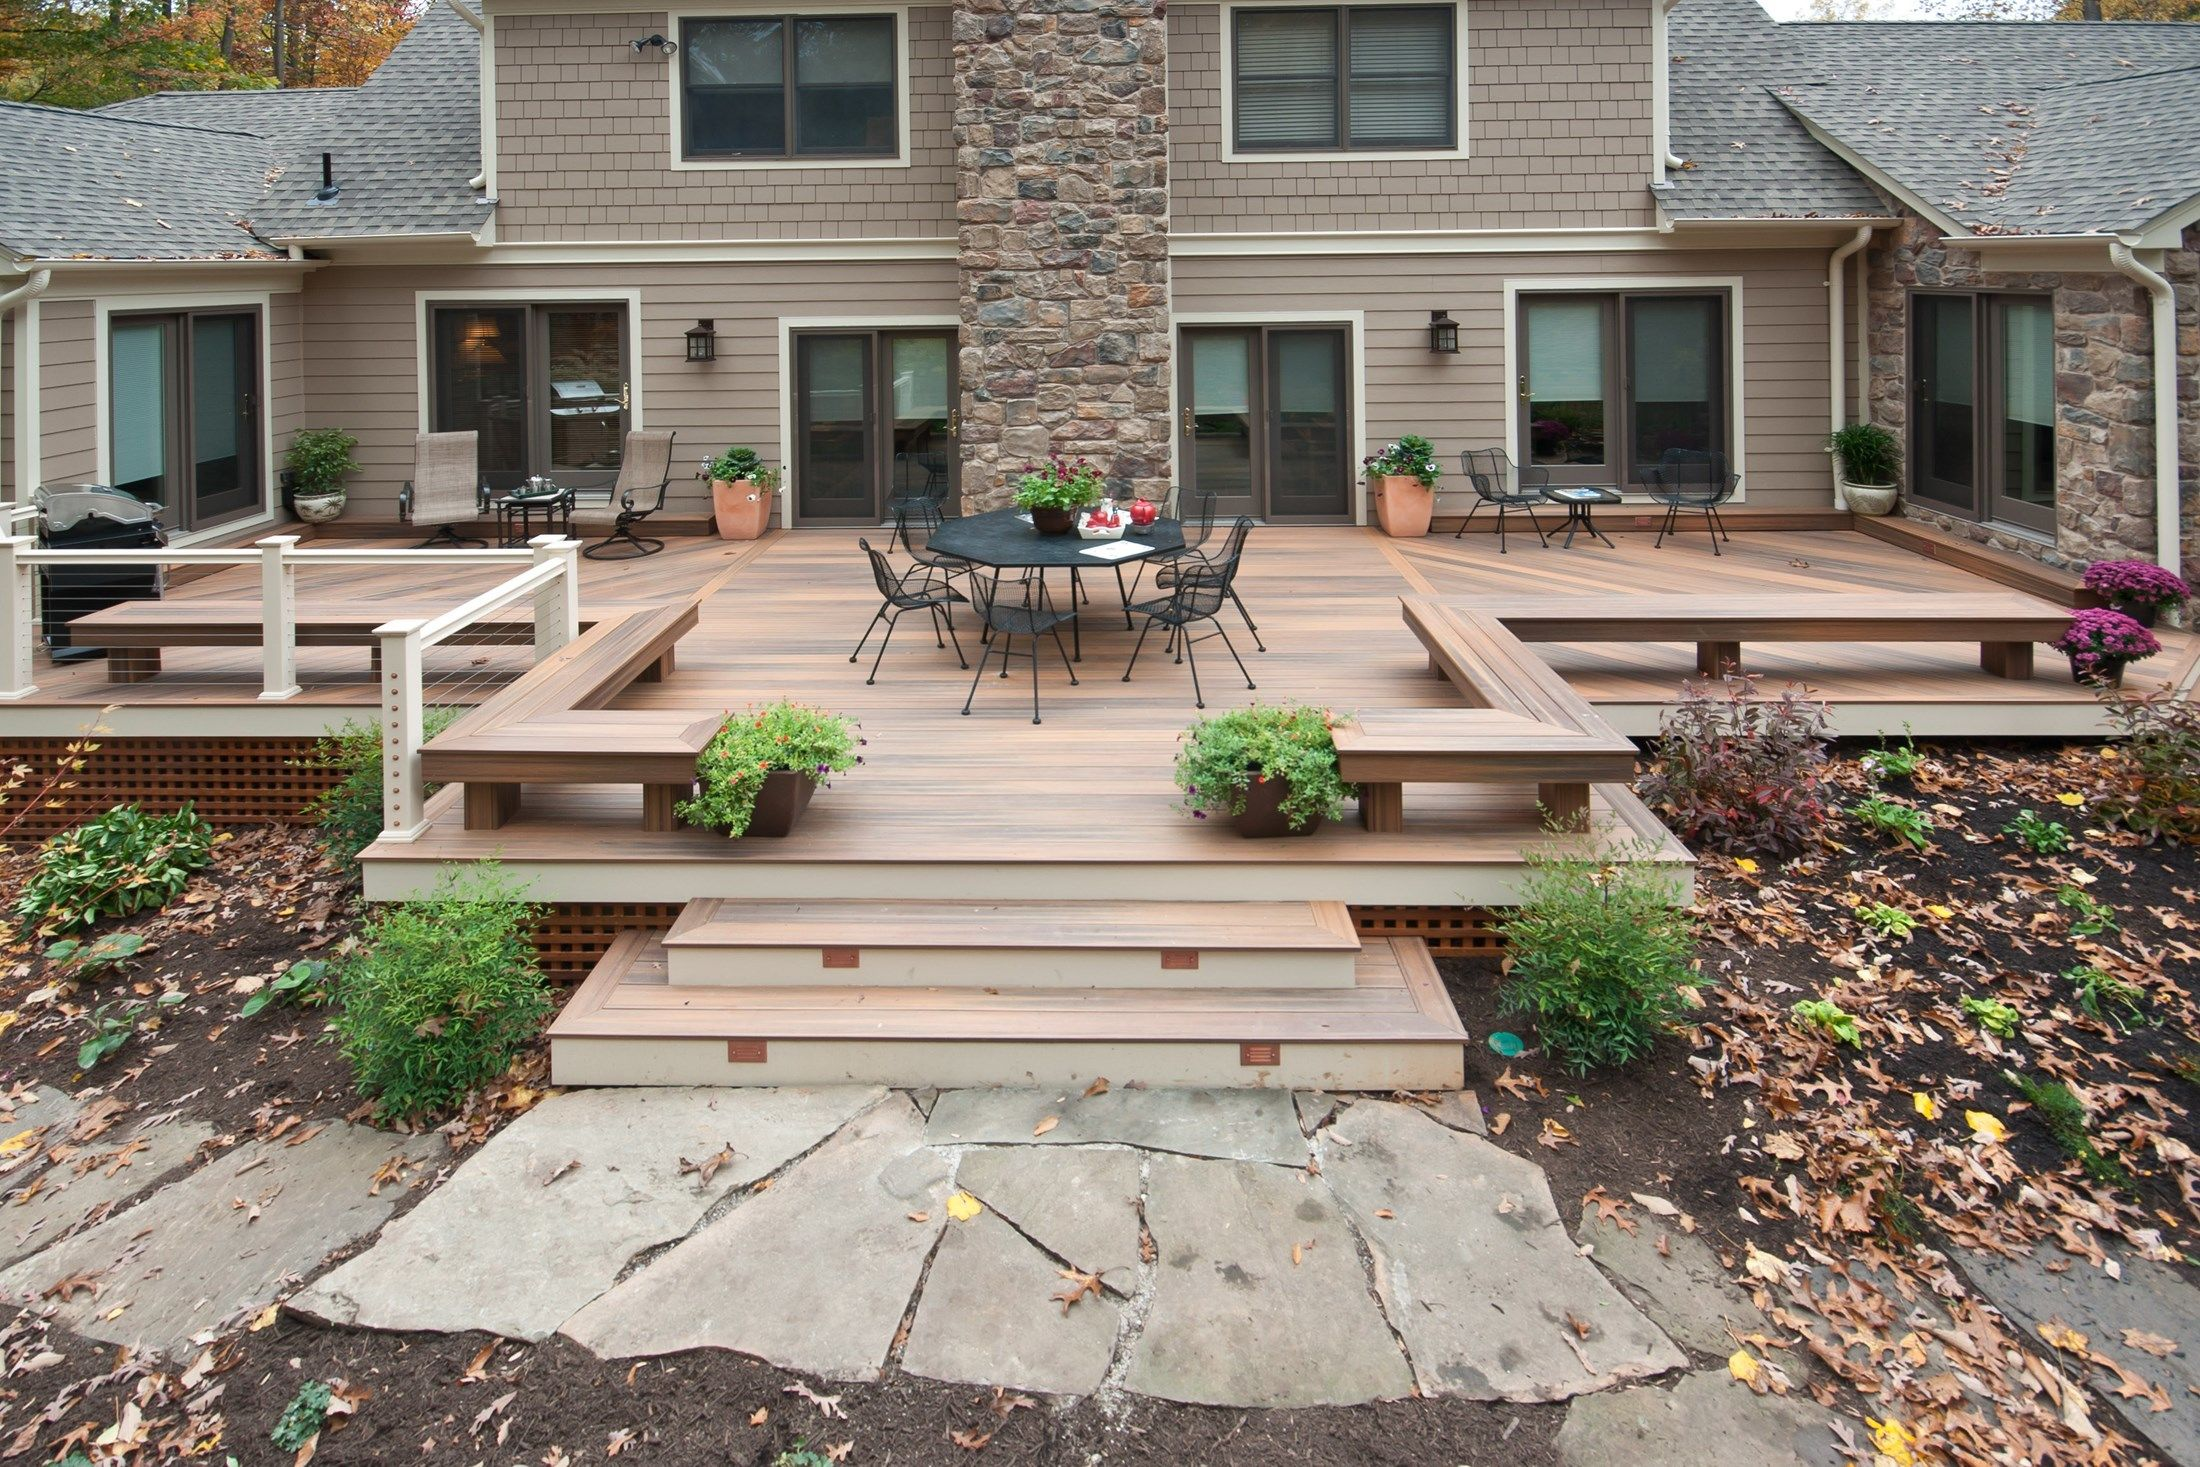 10 tips for designing a great deck for Backyard deck designs pictures